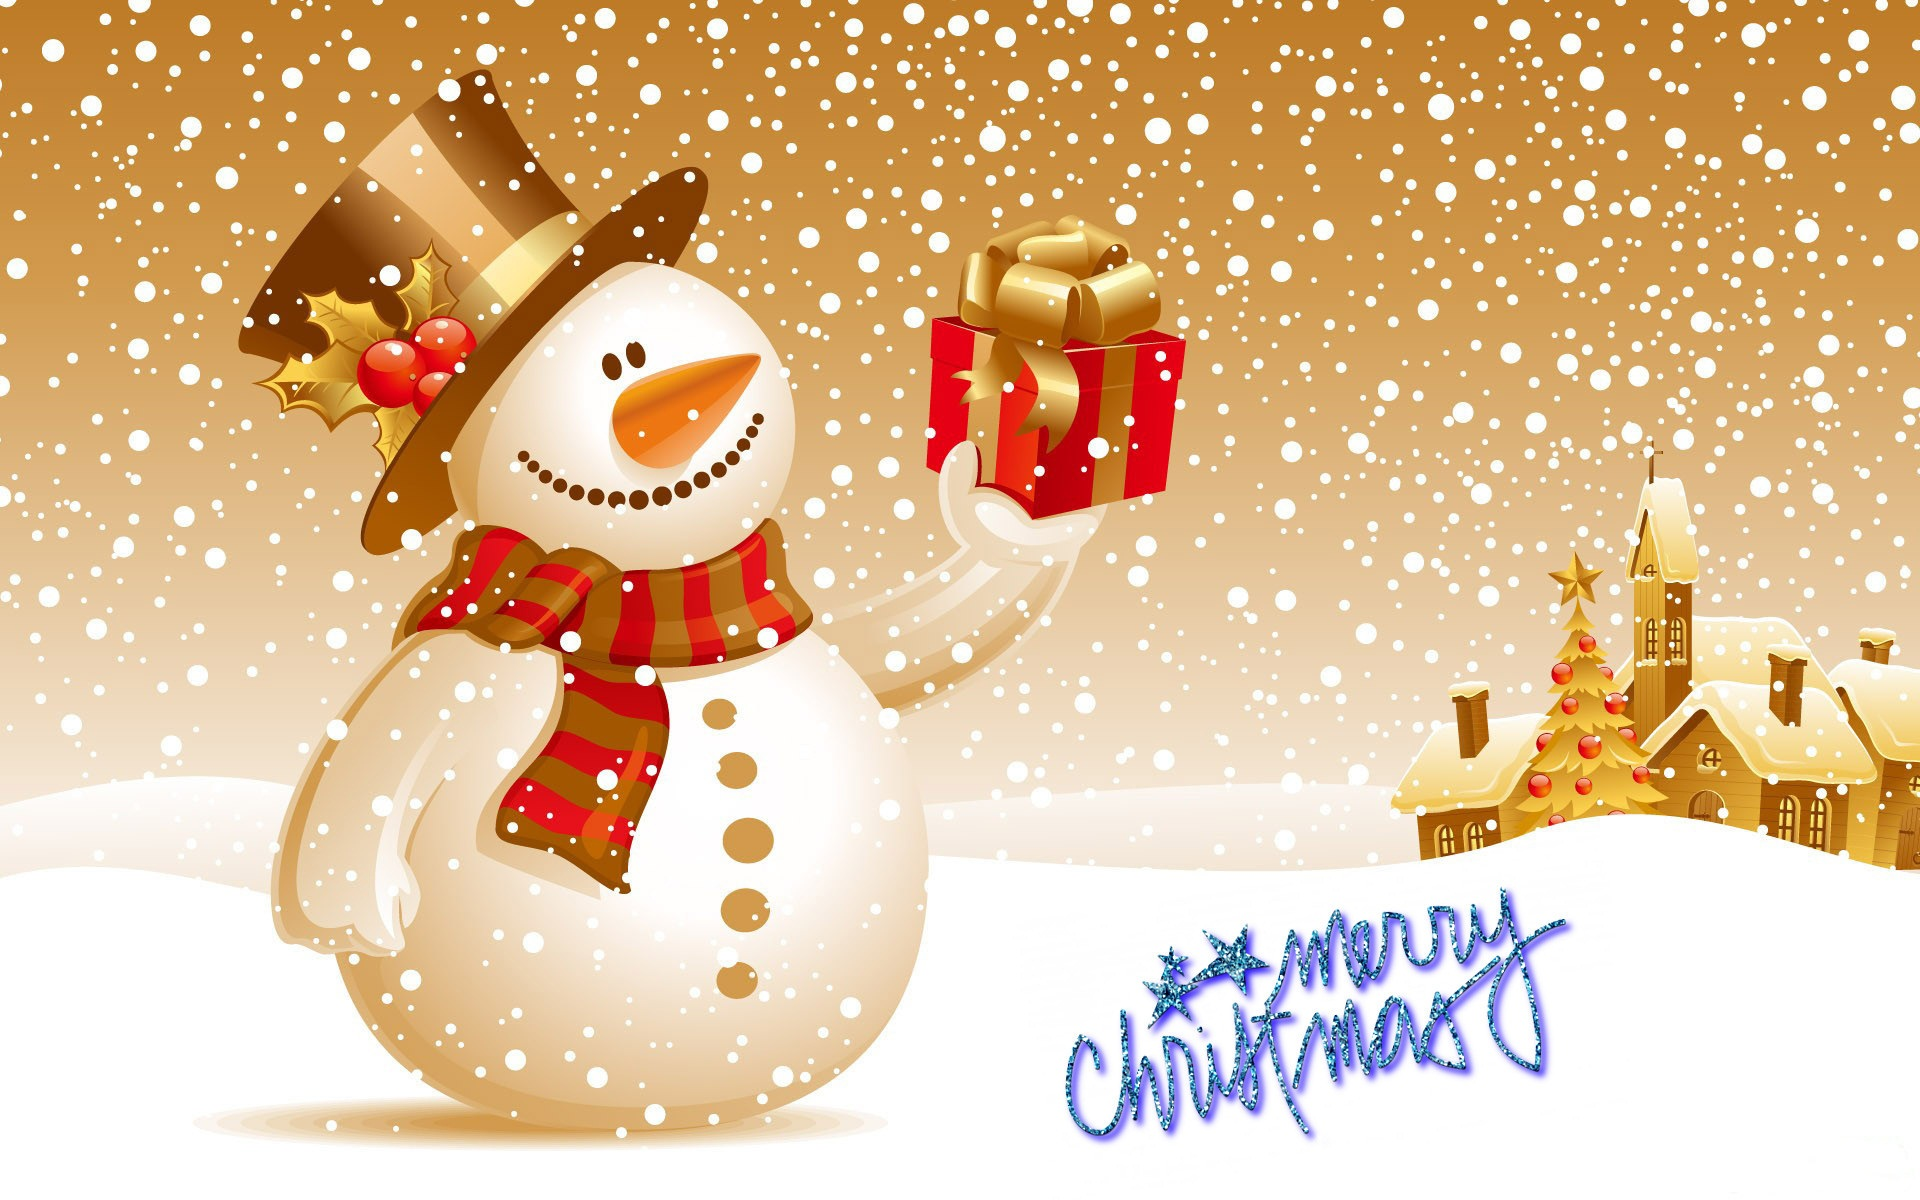 Christmas greeting wallpapers christmas day greetings merry christmas wallpaper 2014 m4hsunfo